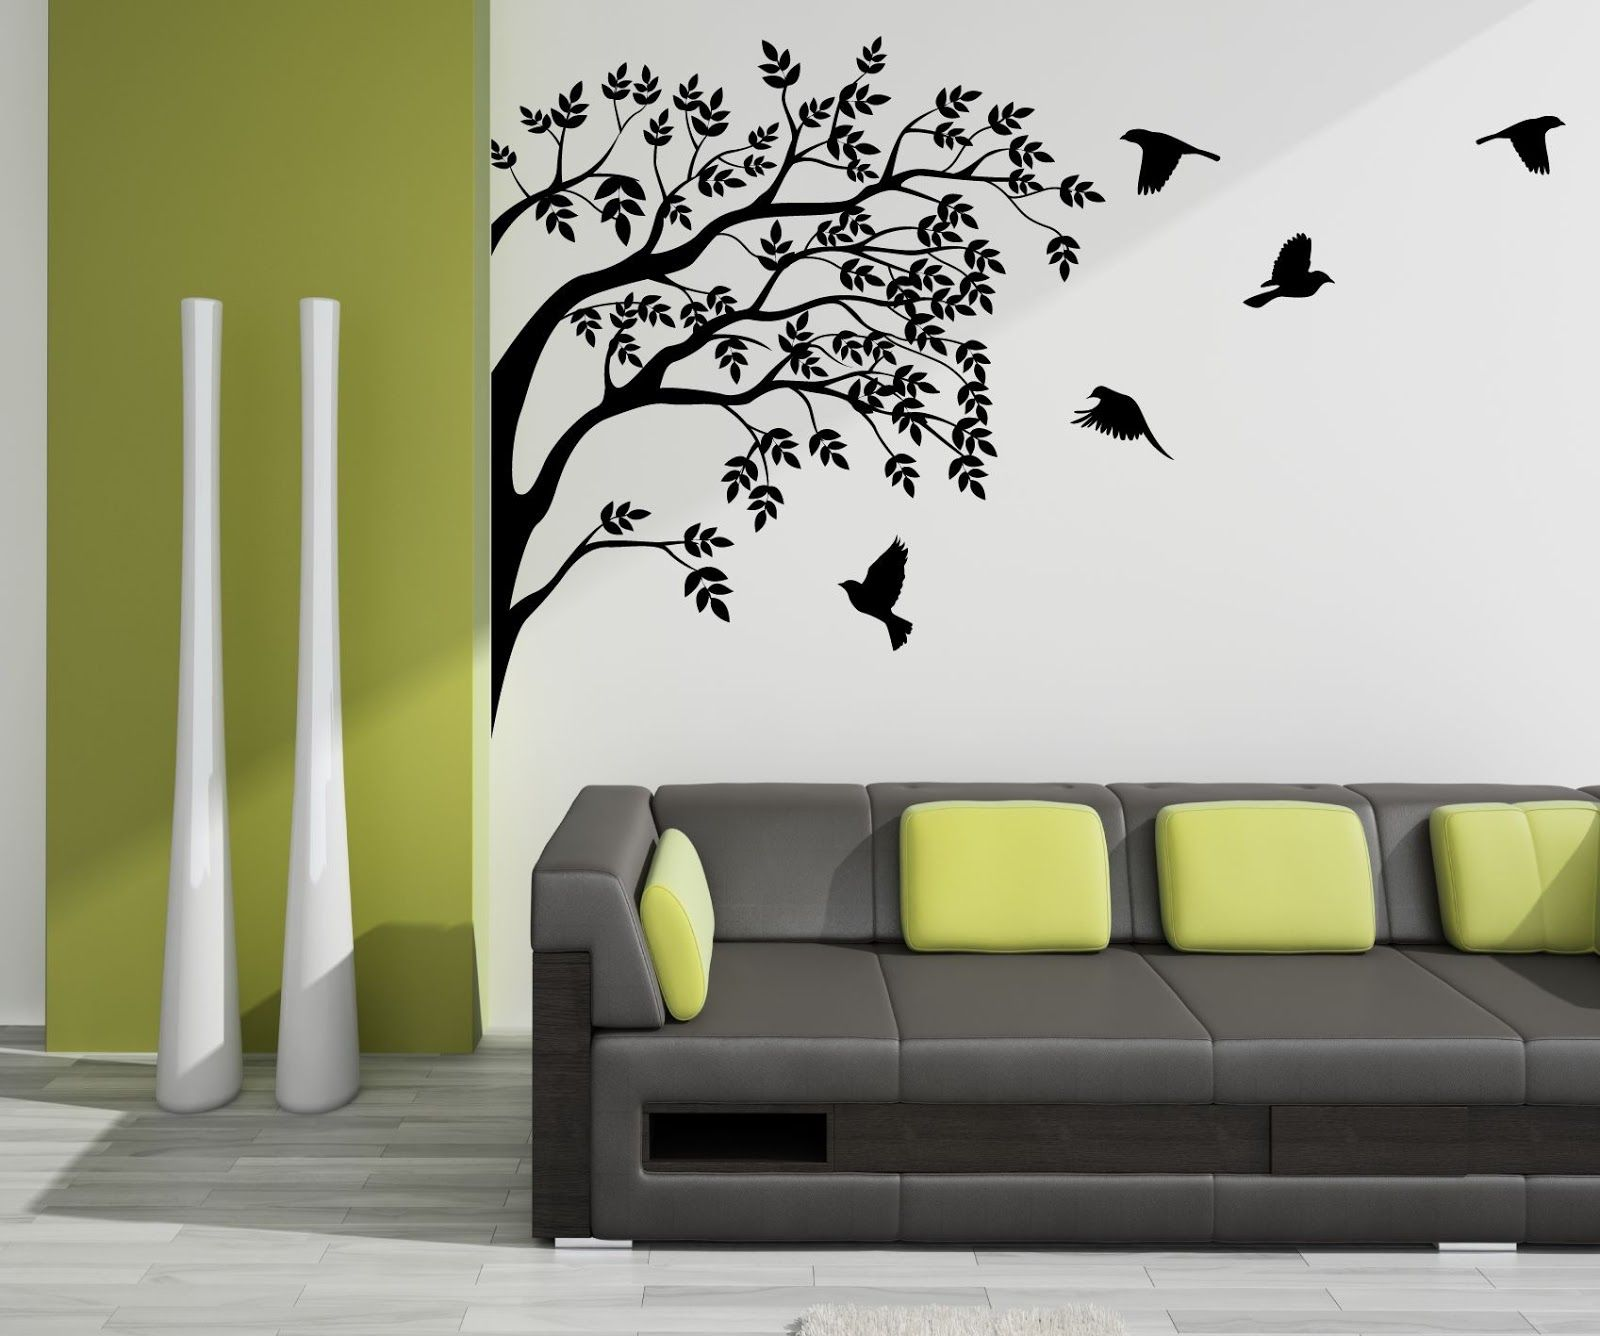 Painted Wall Designs Designs For Pictures On A Wall Home Interior Design